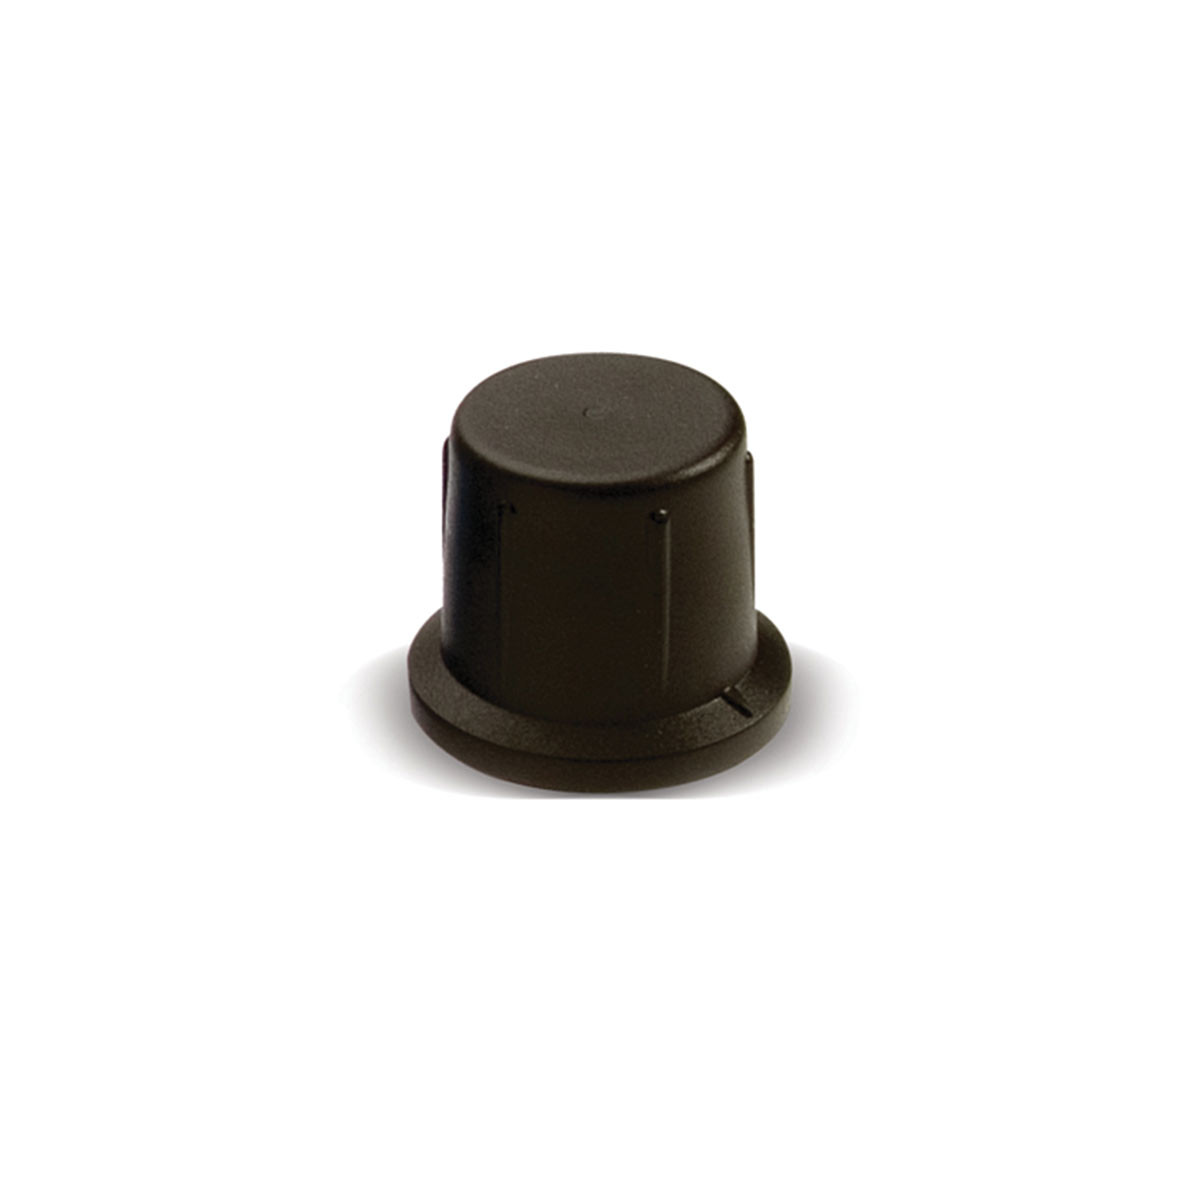 Caps for Glass Cuvette Used with HI96 Series Portable Photometers (4 pcs)